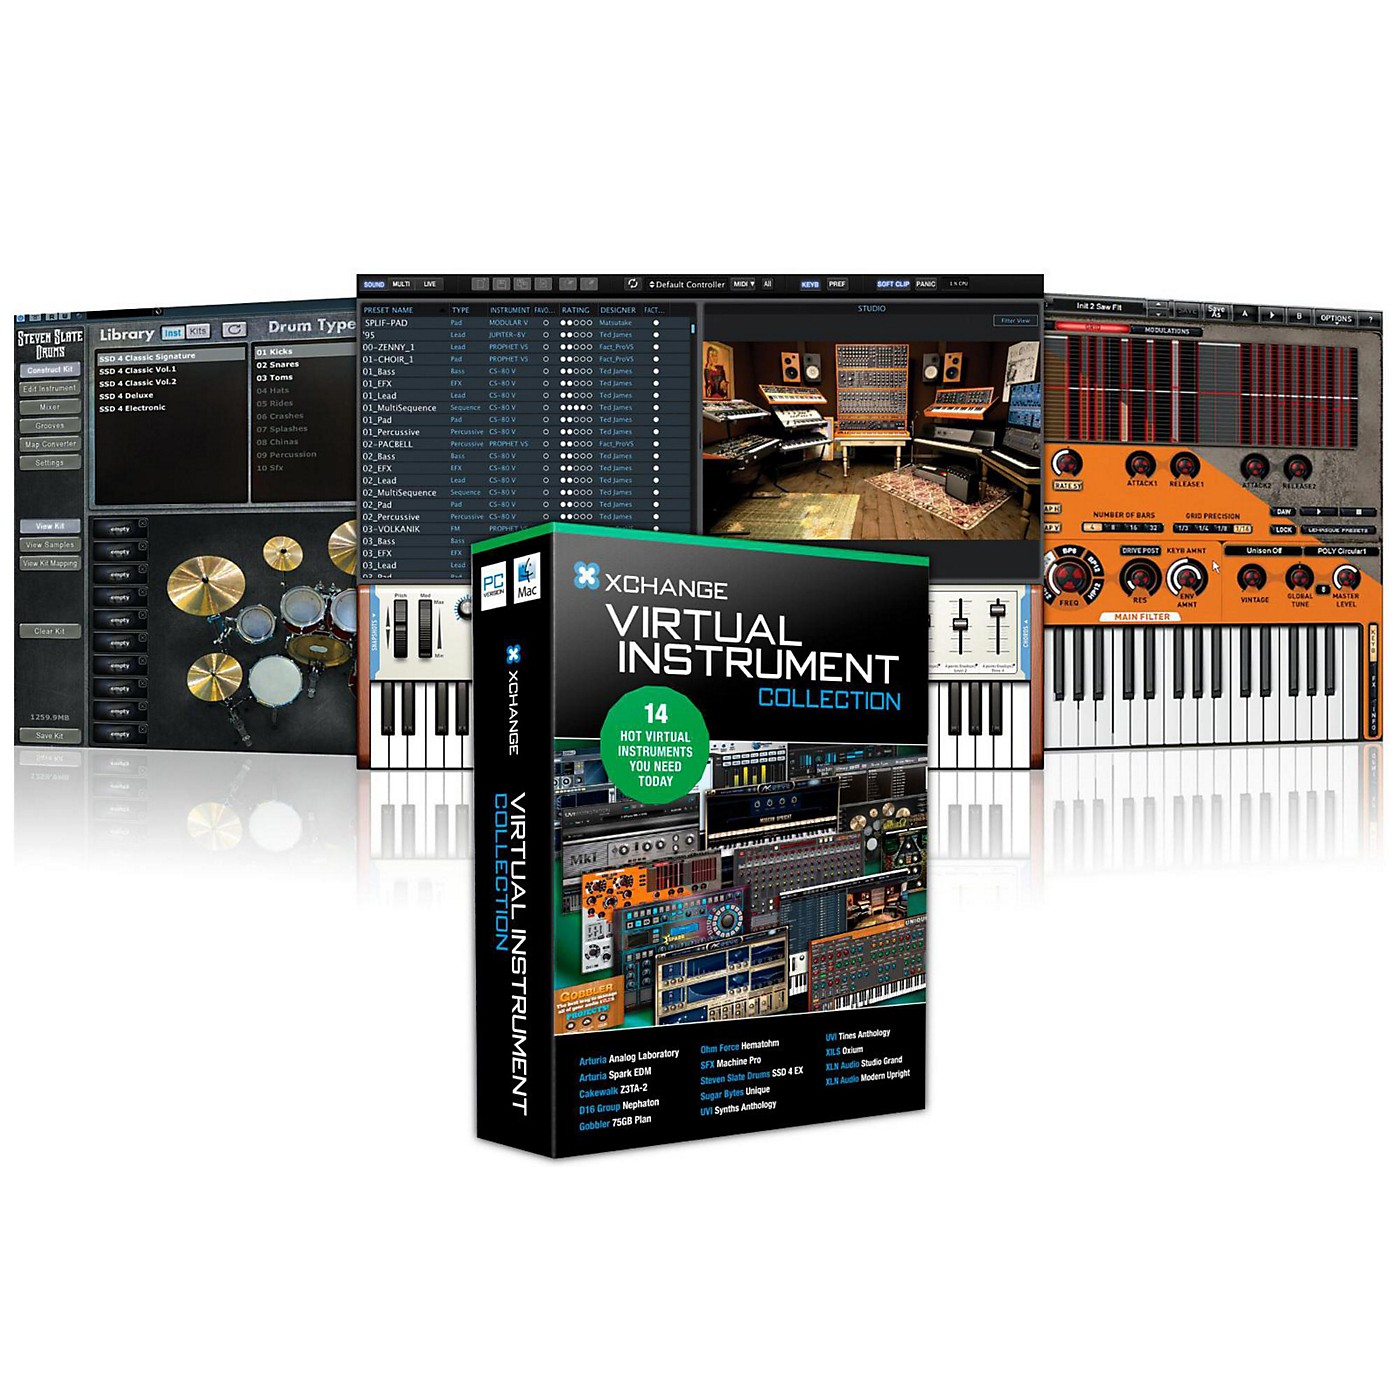 XCHANGE Virtual Instrument Collection with Arturia, Cakewalk, D16 Group, Ohm Force, Steven Slate, Sugar Bytes, and UVI thumbnail